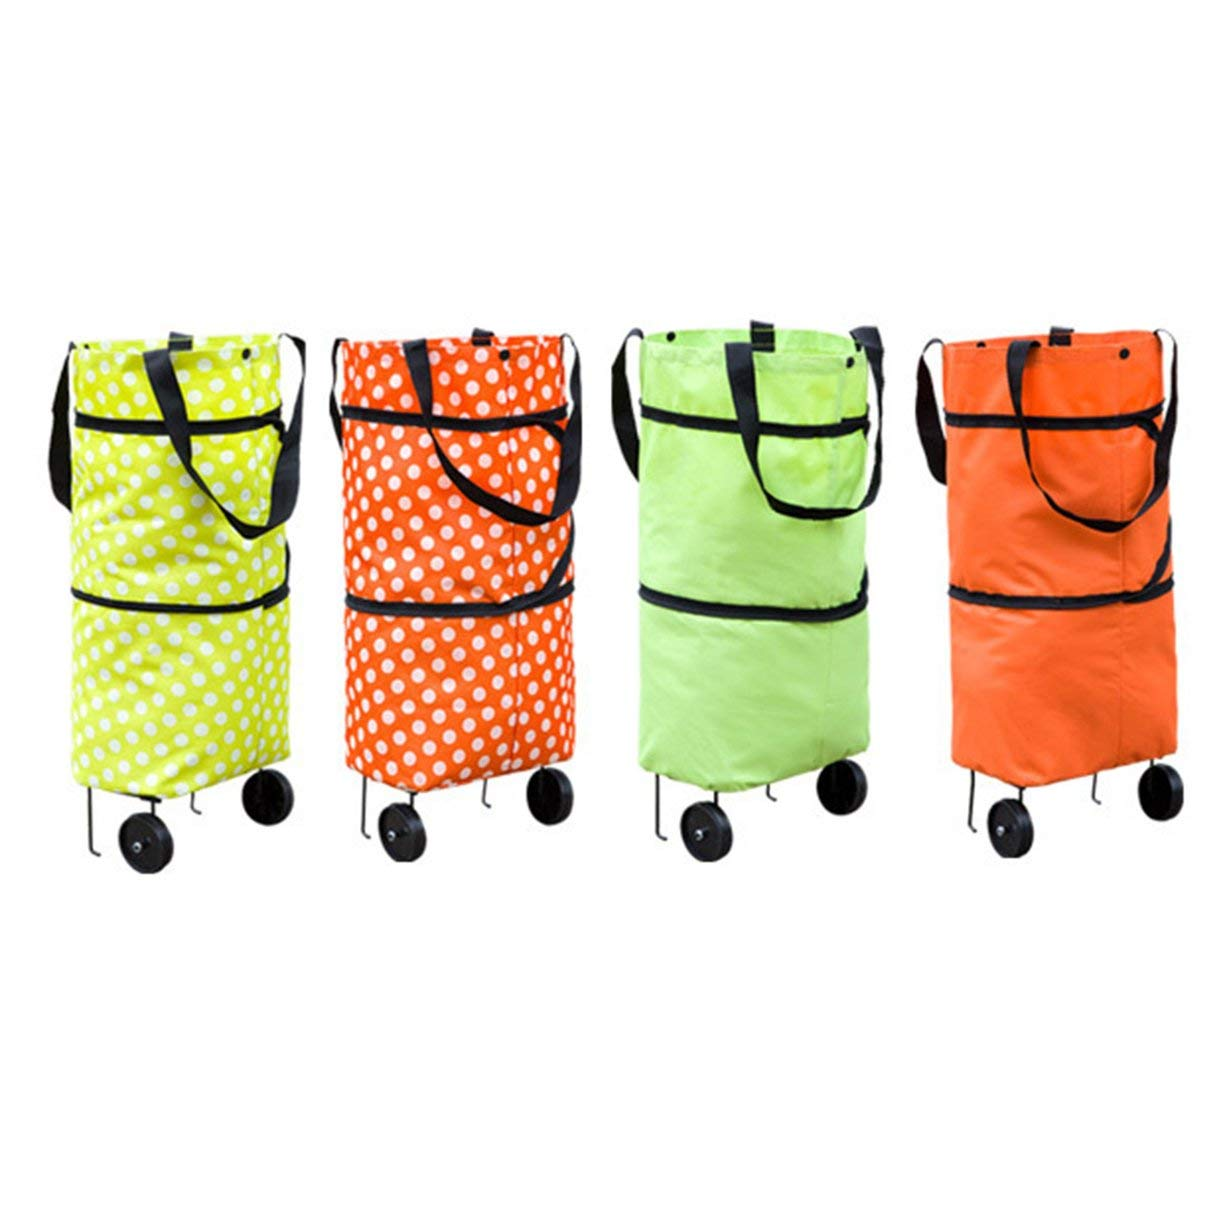 Shopping Trolley Wheel Bag,Fashionable Design Large Capacity Waterproof Oxford Cloth Foldable Shopping Trolley Wheel Bag Traval Cart Luggage Bag by Detectoy (Image #6)